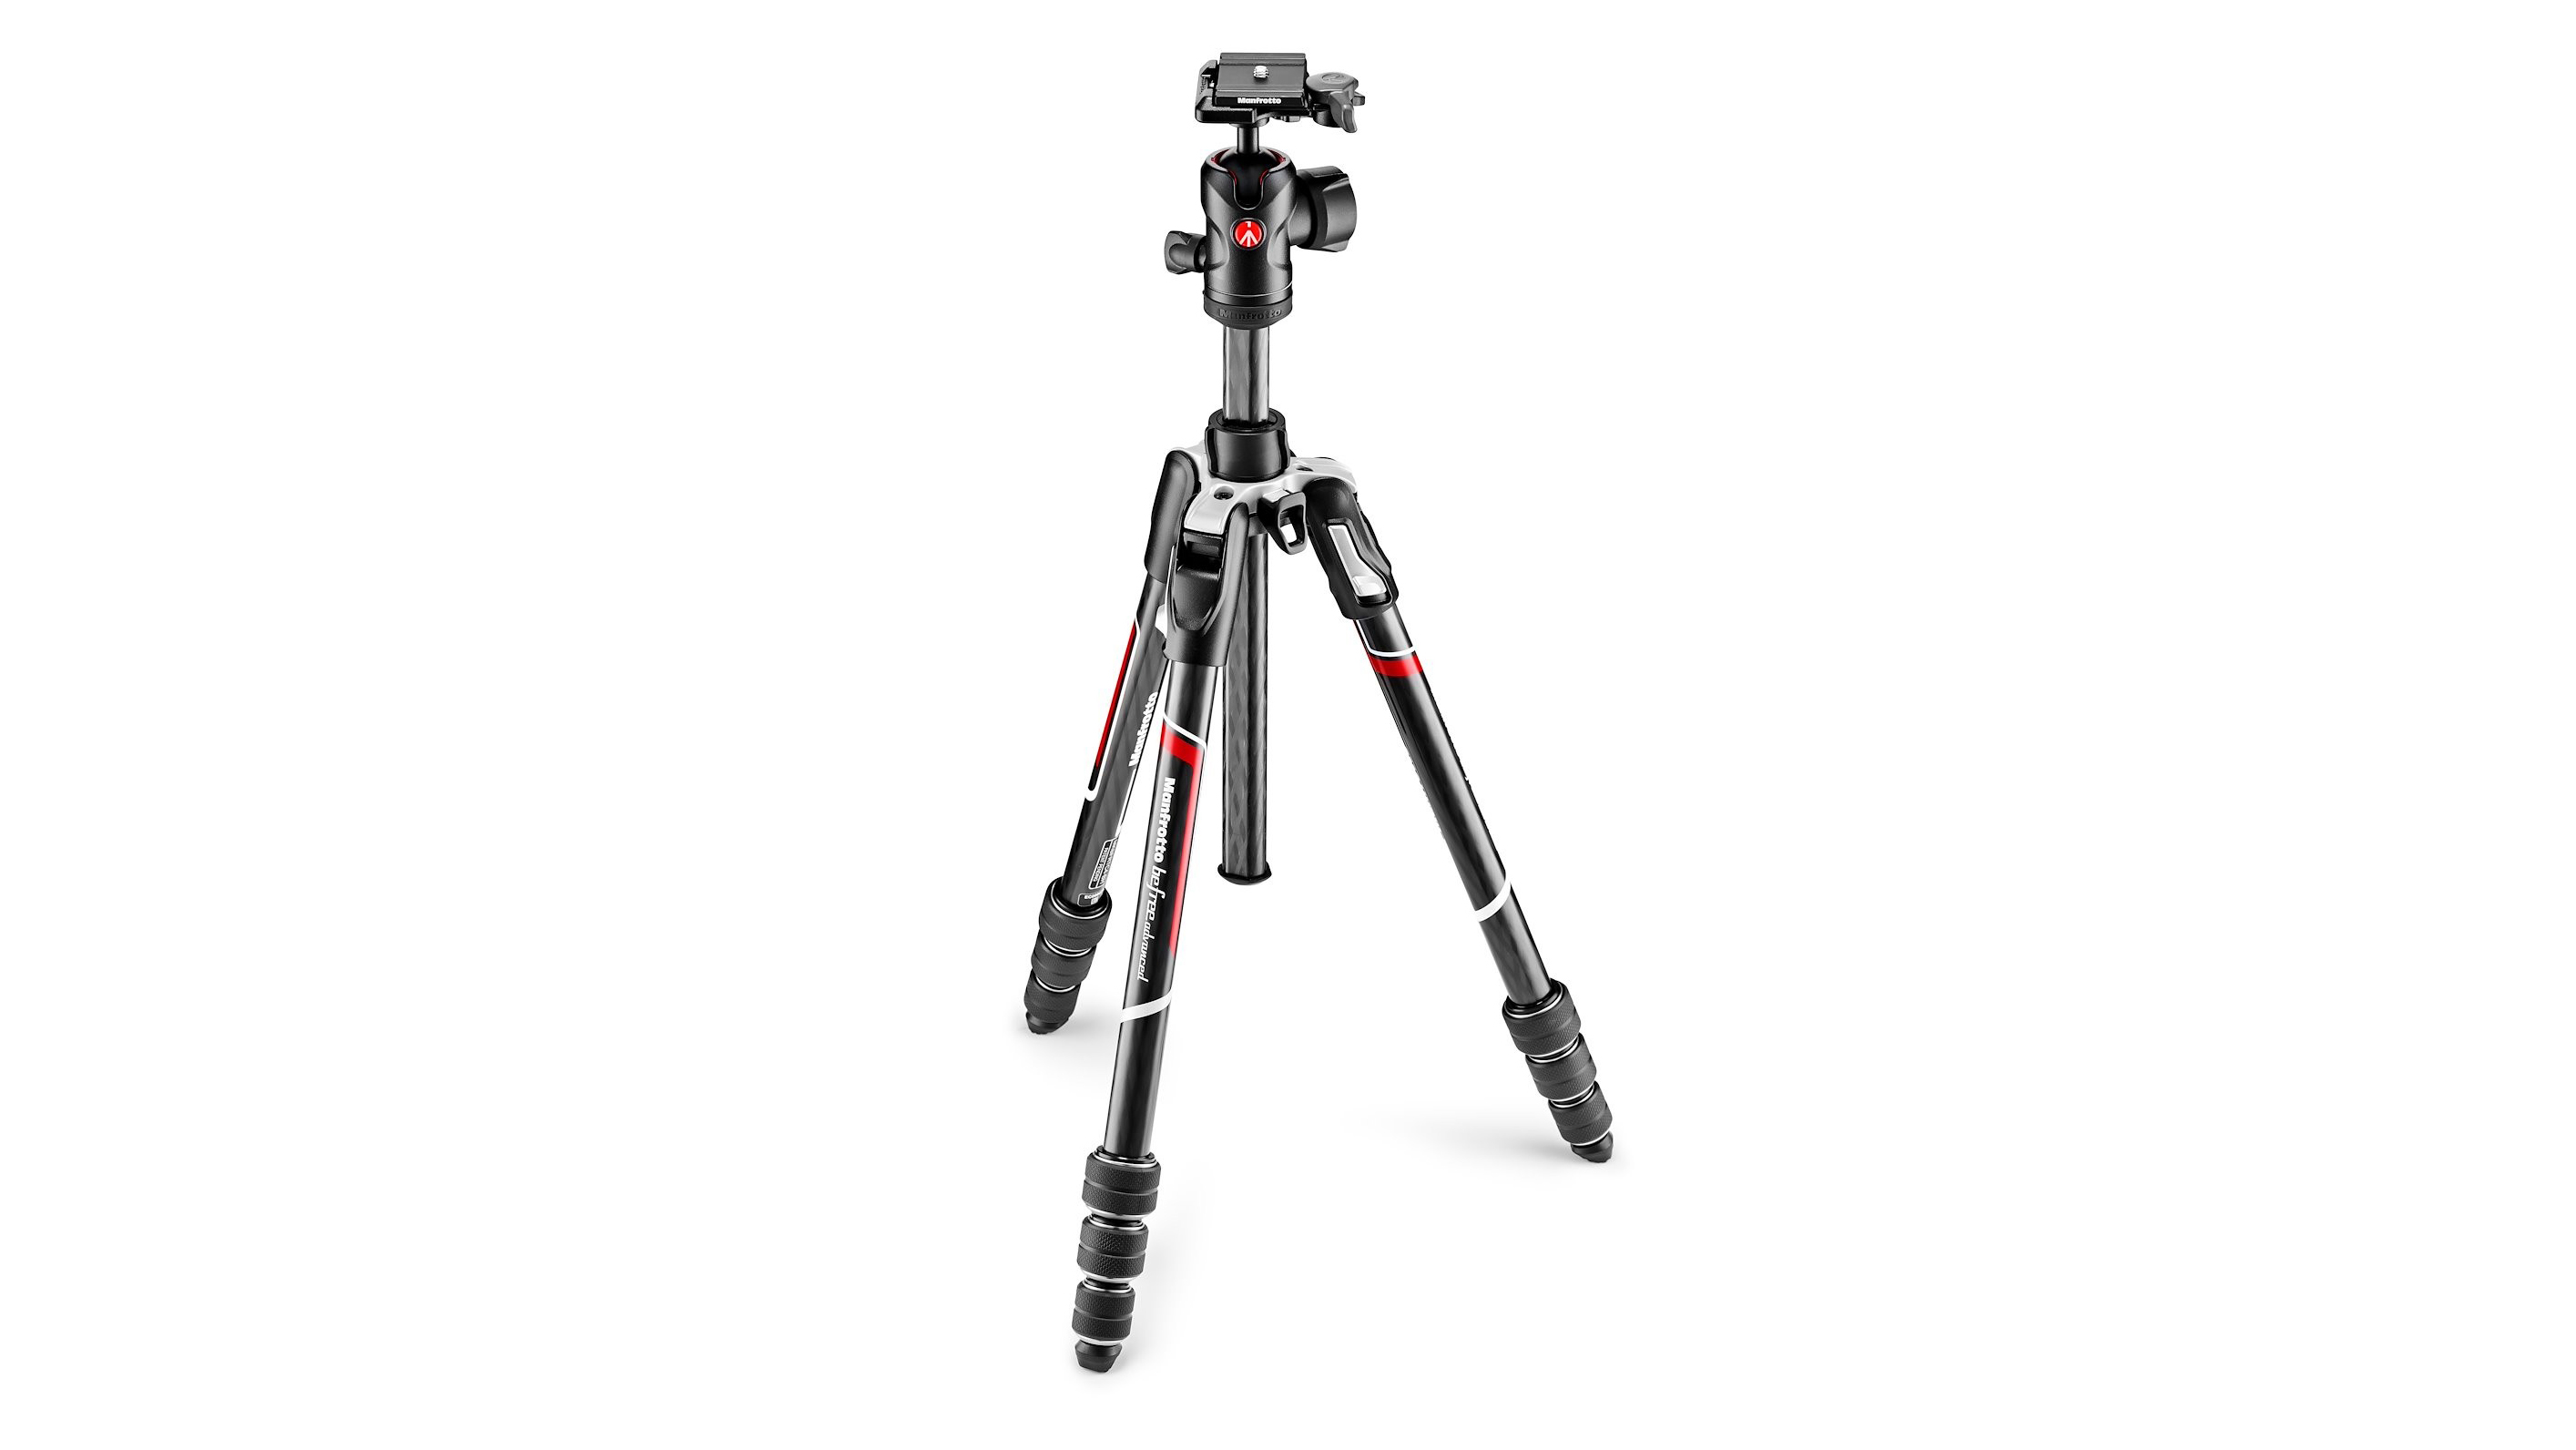 Manfrotto adds three new travel tripods to its range